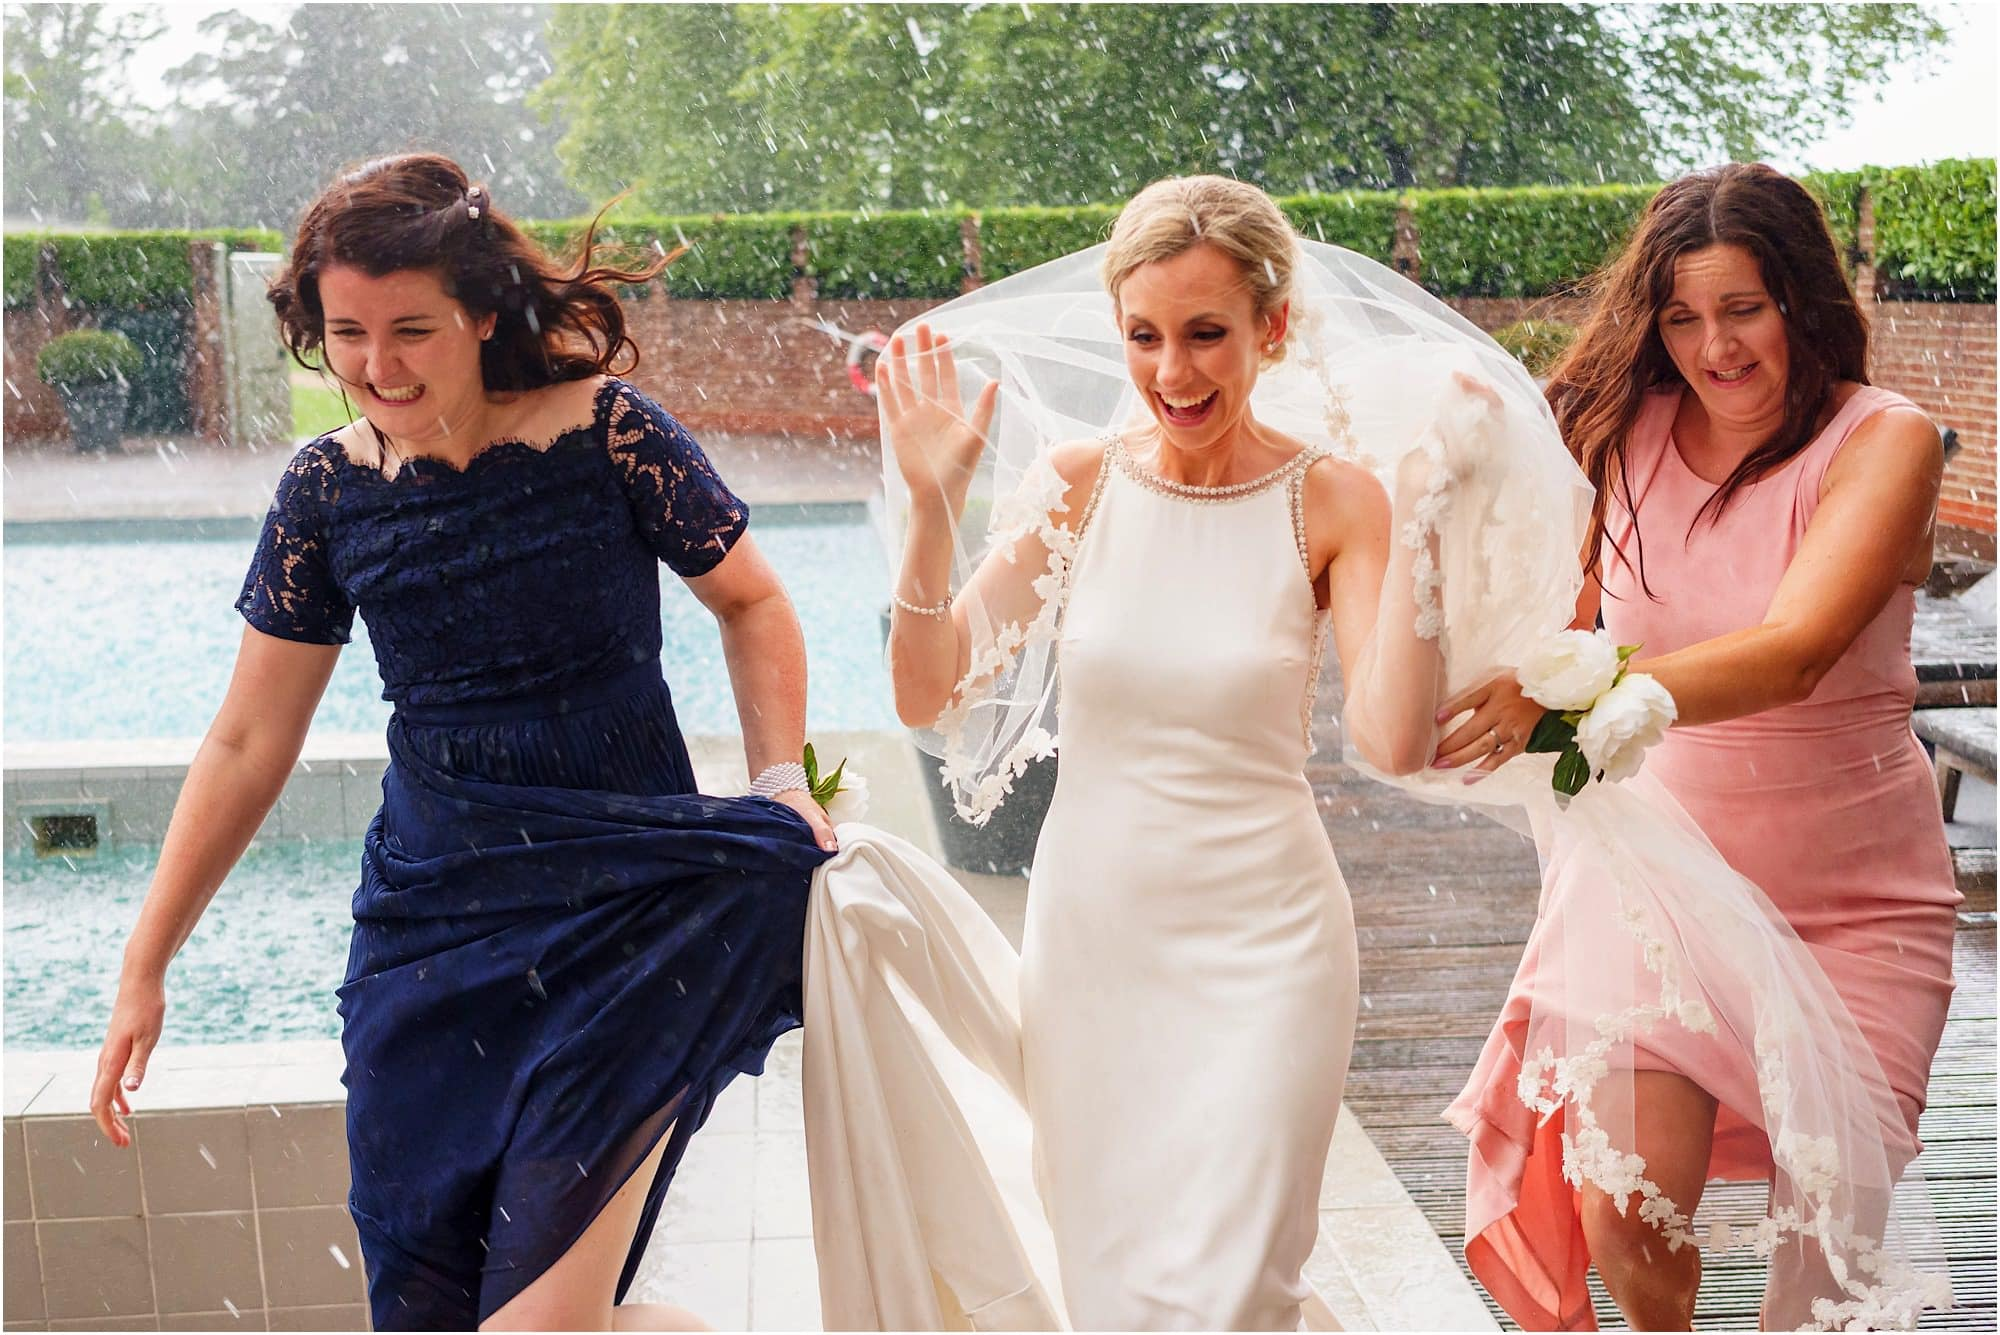 bride and bridesmaids running in the rain!